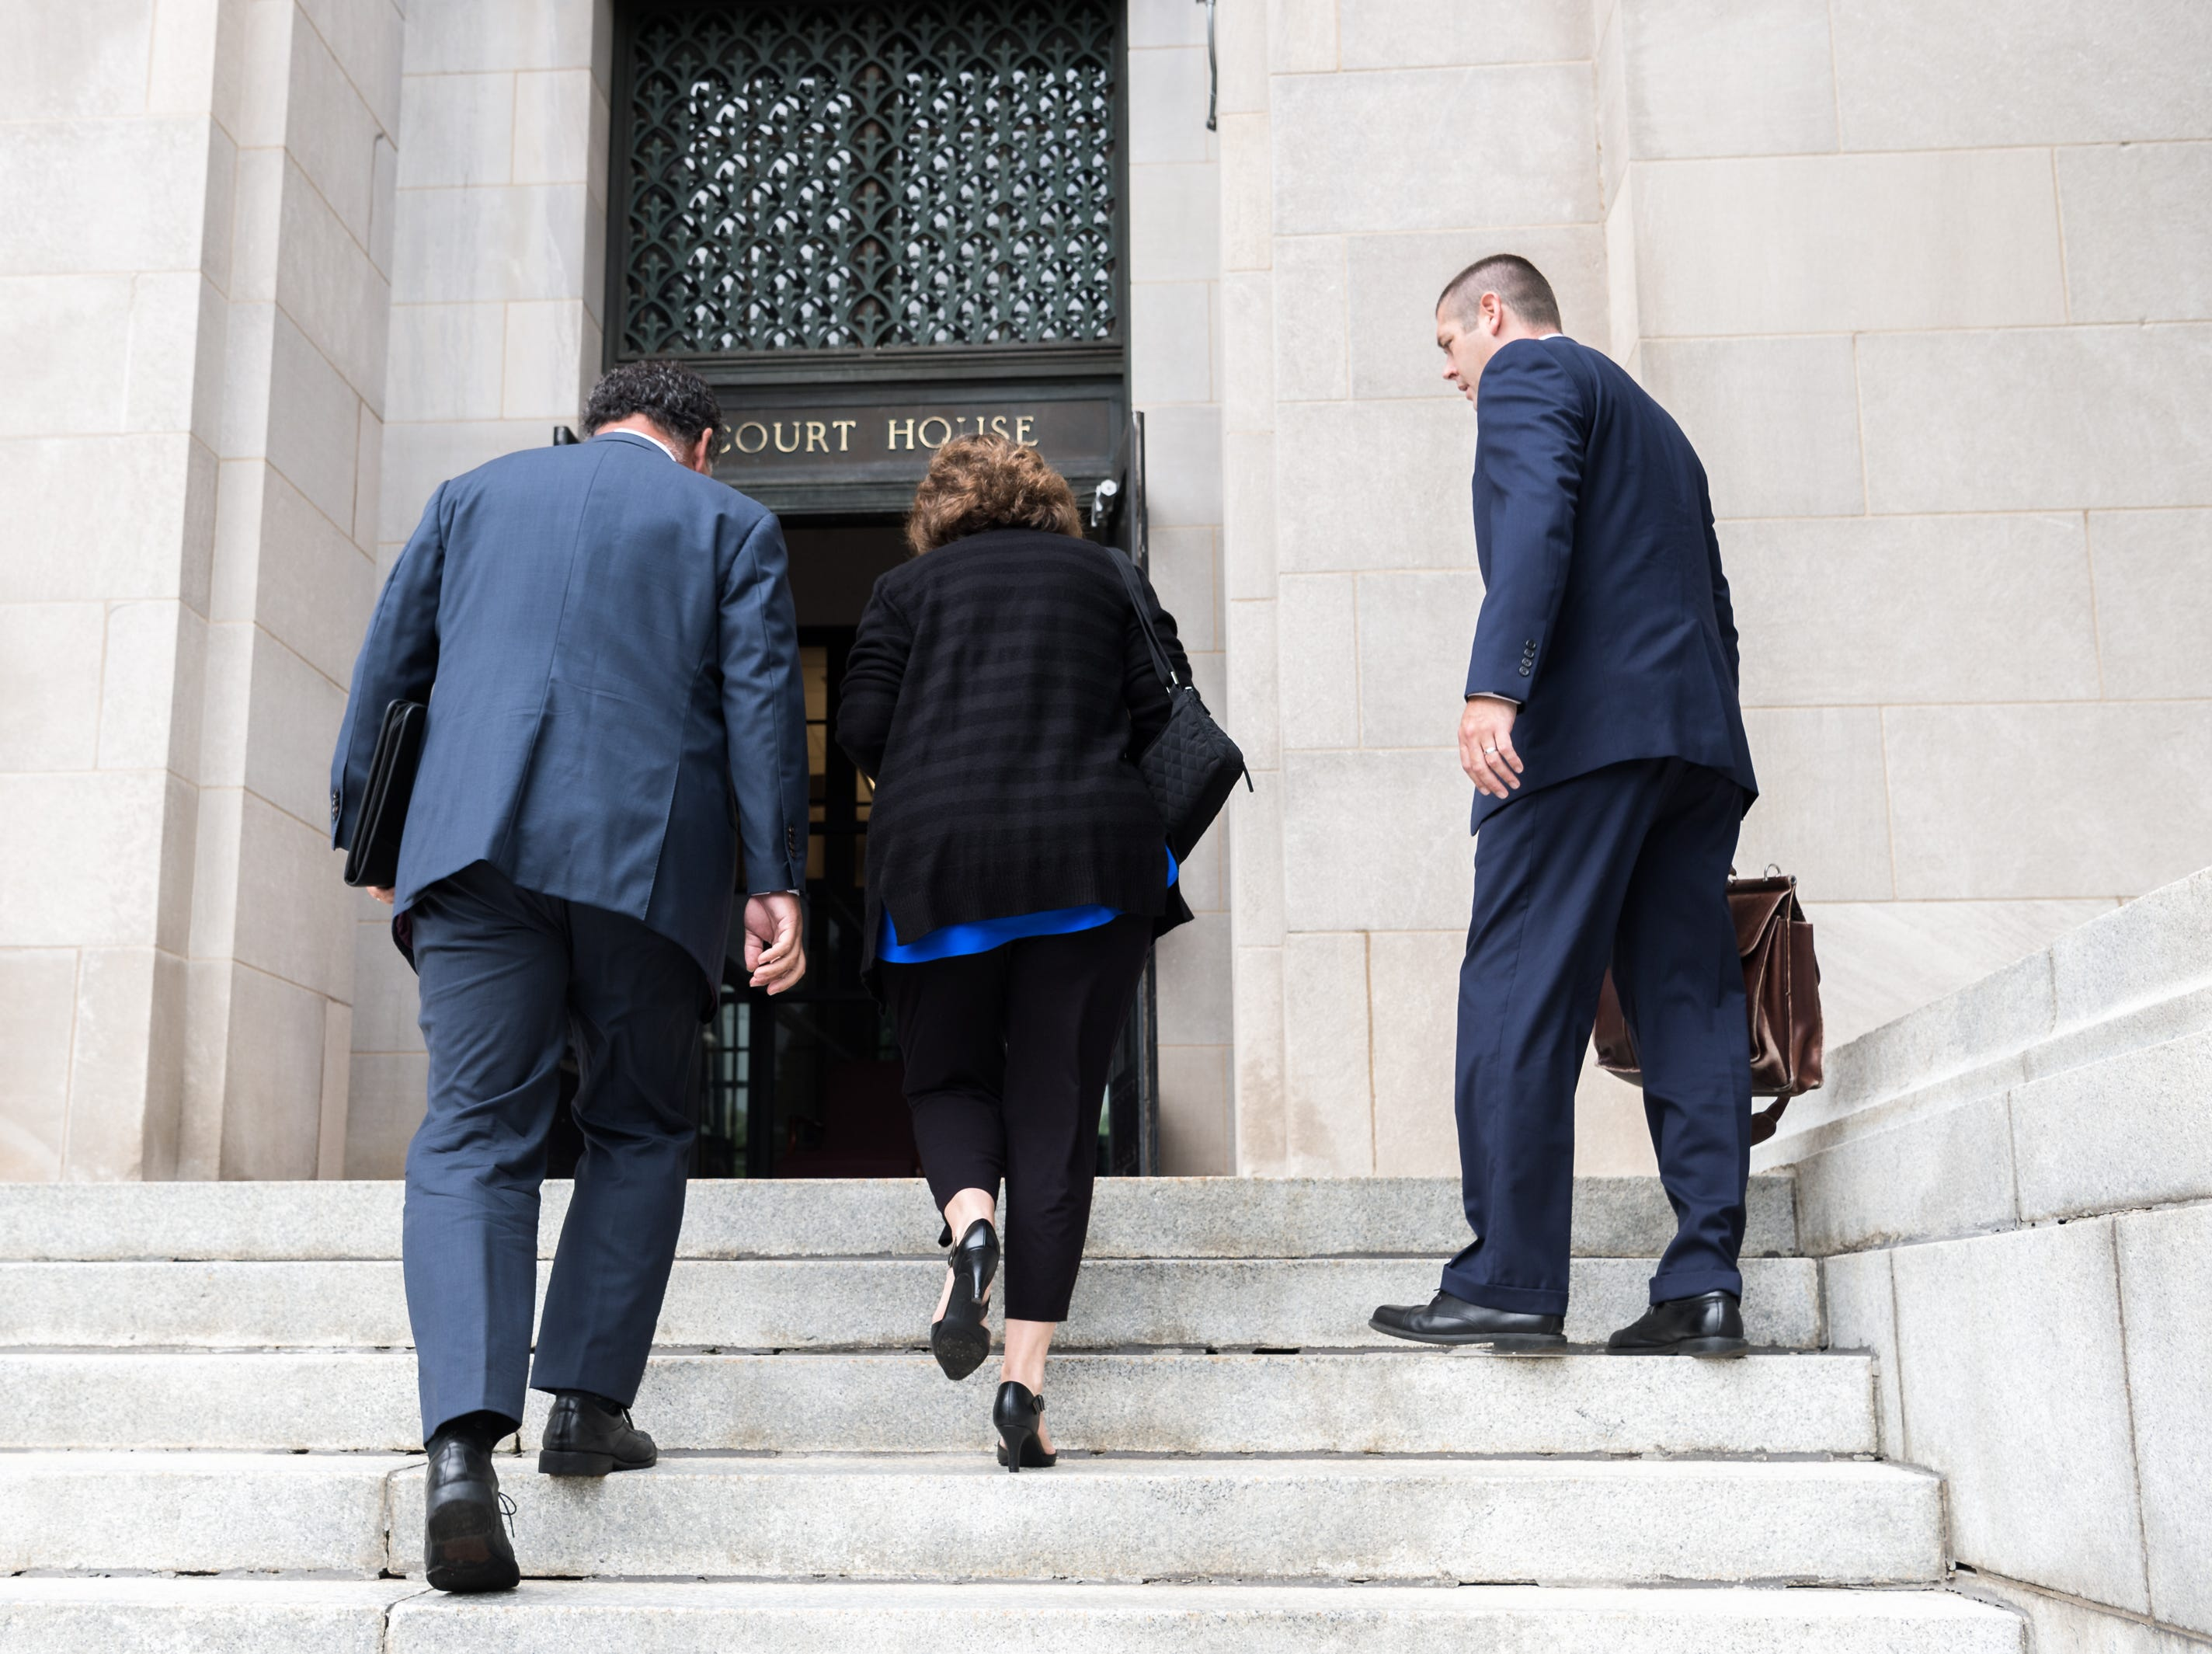 Wanda Greene, former Buncombe County manager, arrives at federal court with her attorneys Noell Tin and Thomas Amburgey Monday, August 20, 2018, to enter a plea for her charges of six counts of tax fraud in connection to a life insurance scheme and embezzlement alleged by prosecutors in previous indictments. Greene, as well as her son Michael Greene have additionally been charged with wire fraud, conspiracy, embezzlement and aiding and abetting.